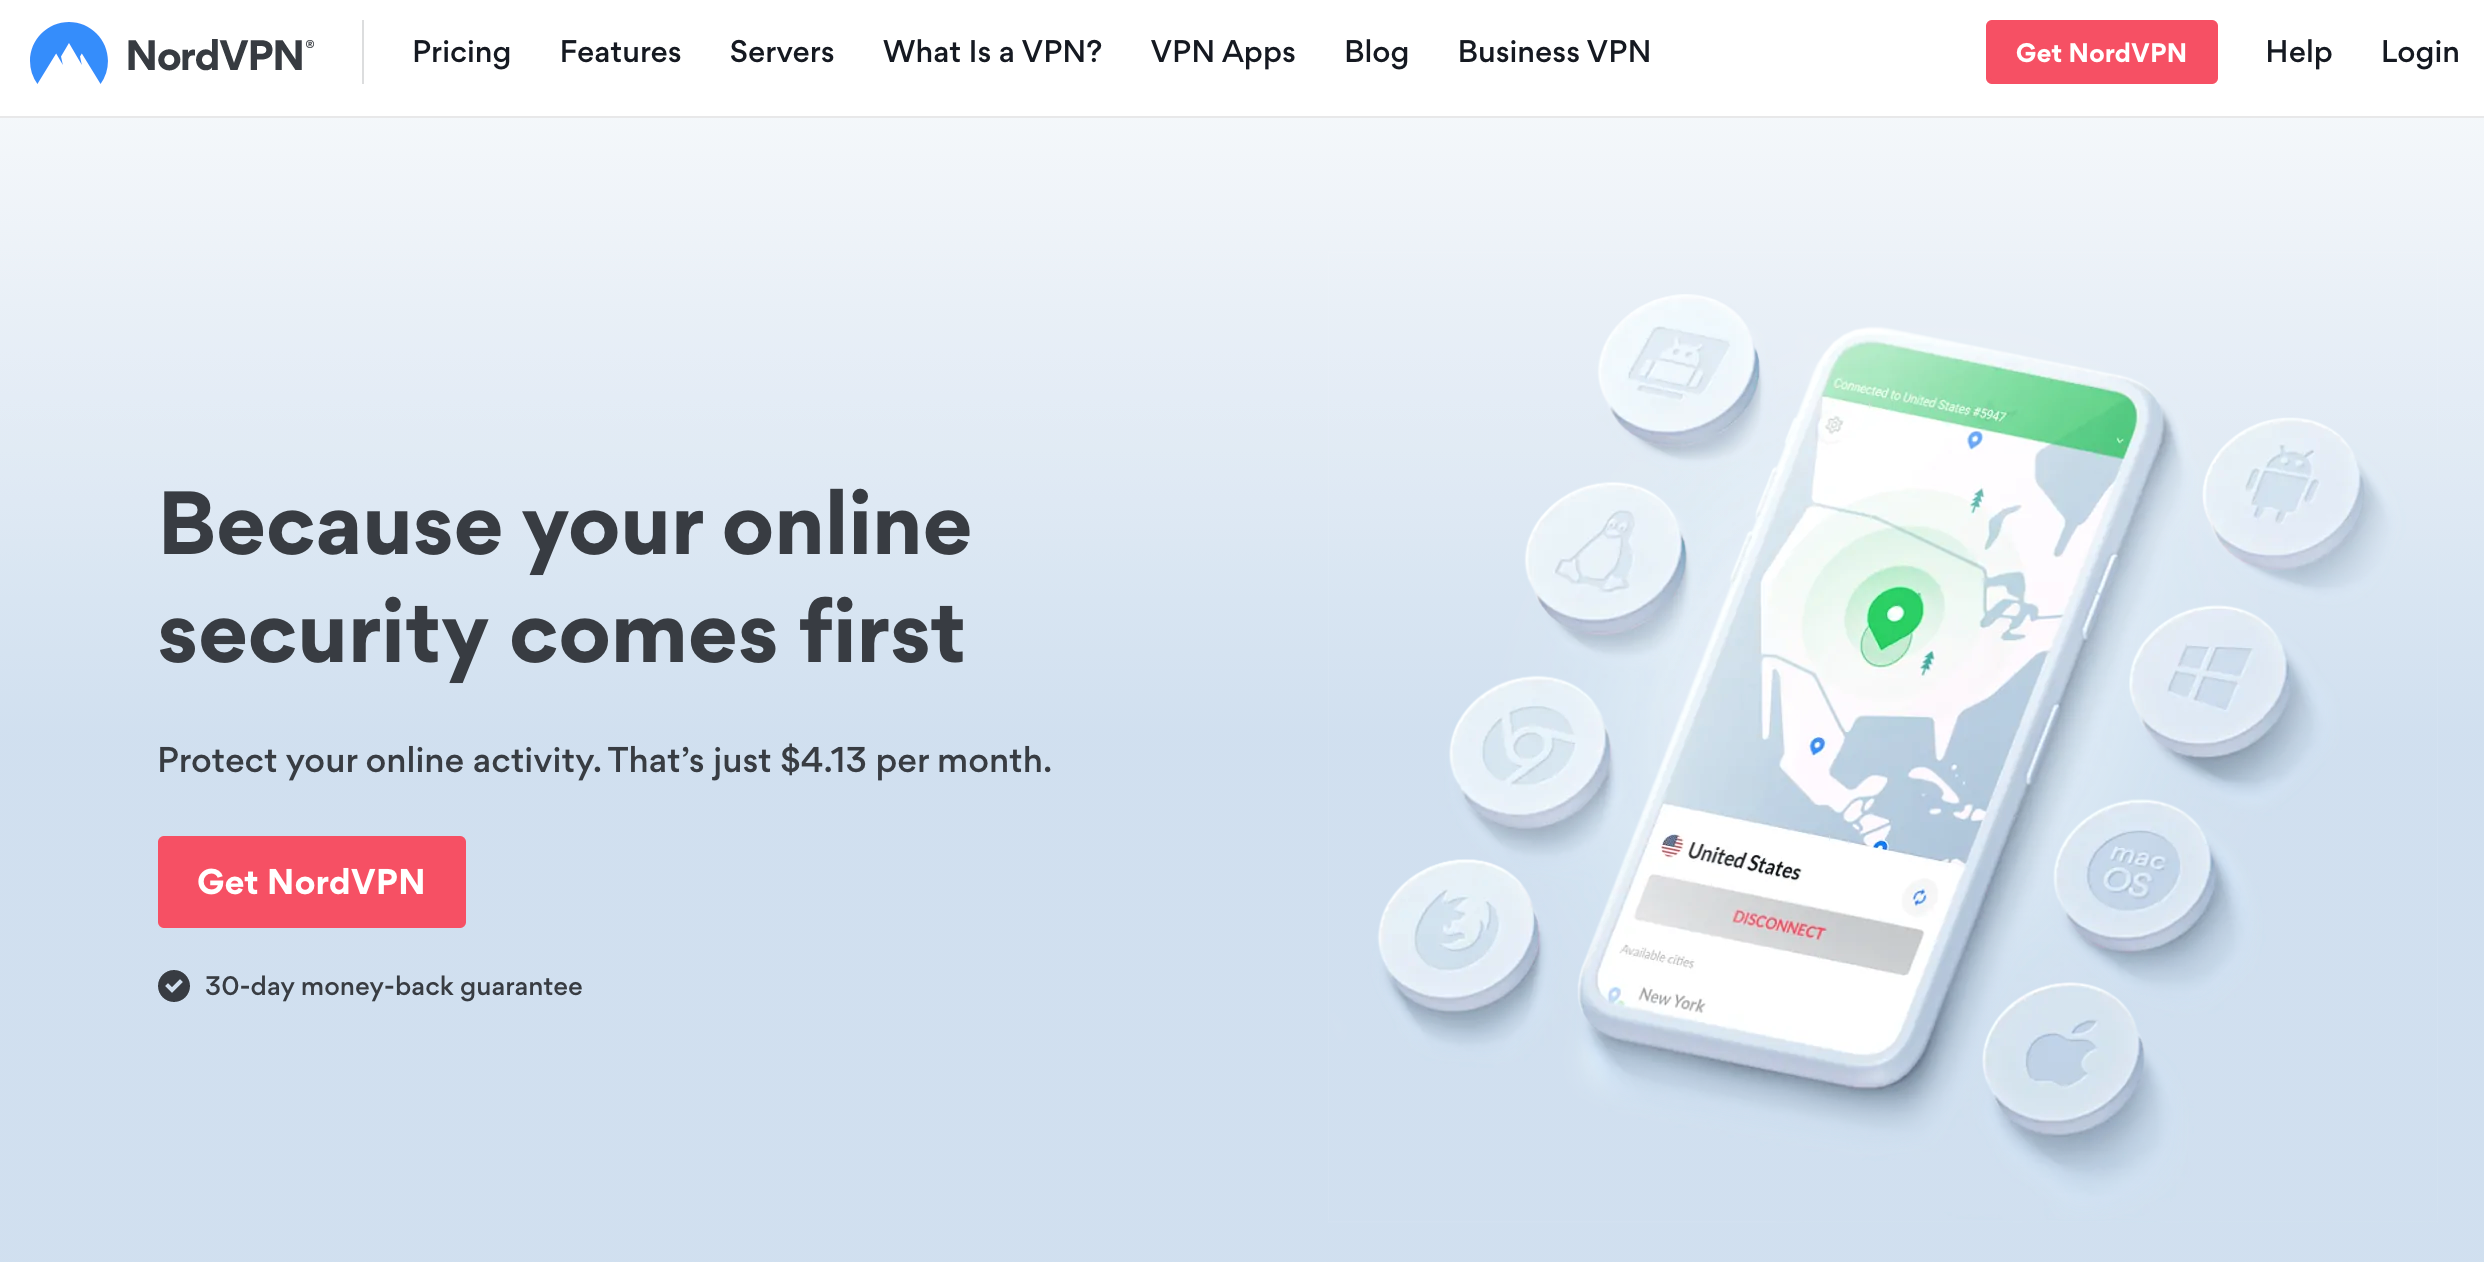 Get the best VPN deal with NordVPN and Tipsfromgeeks